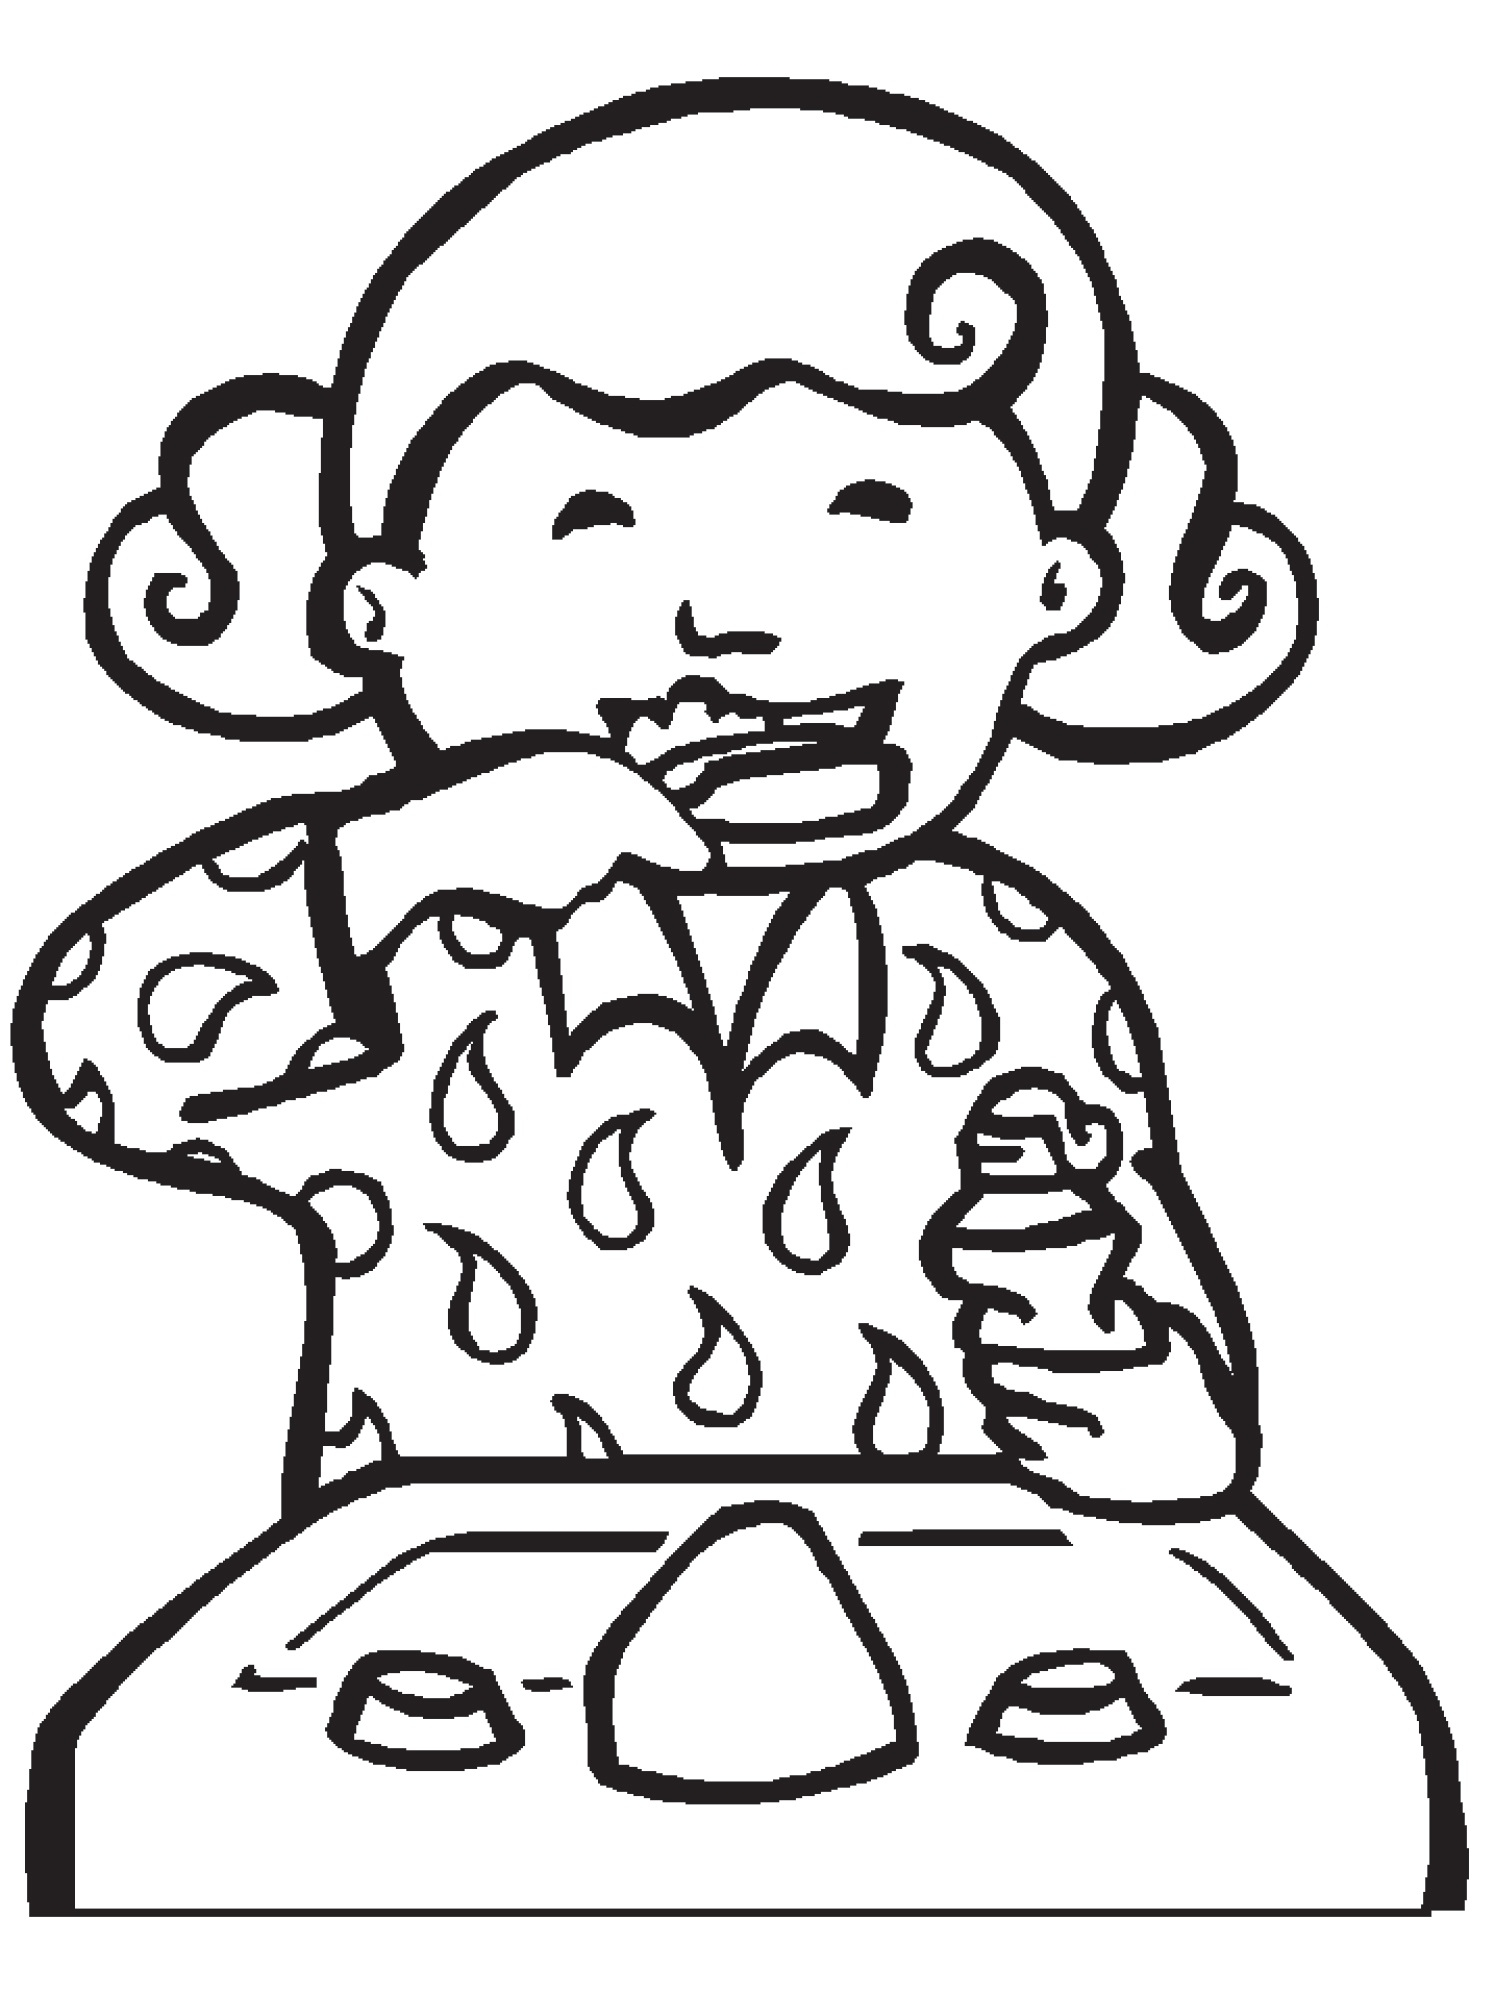 Child brushing teeth black and white clipart vector freeuse Brushing Teeth Drawing | Free download best Brushing Teeth Drawing ... vector freeuse